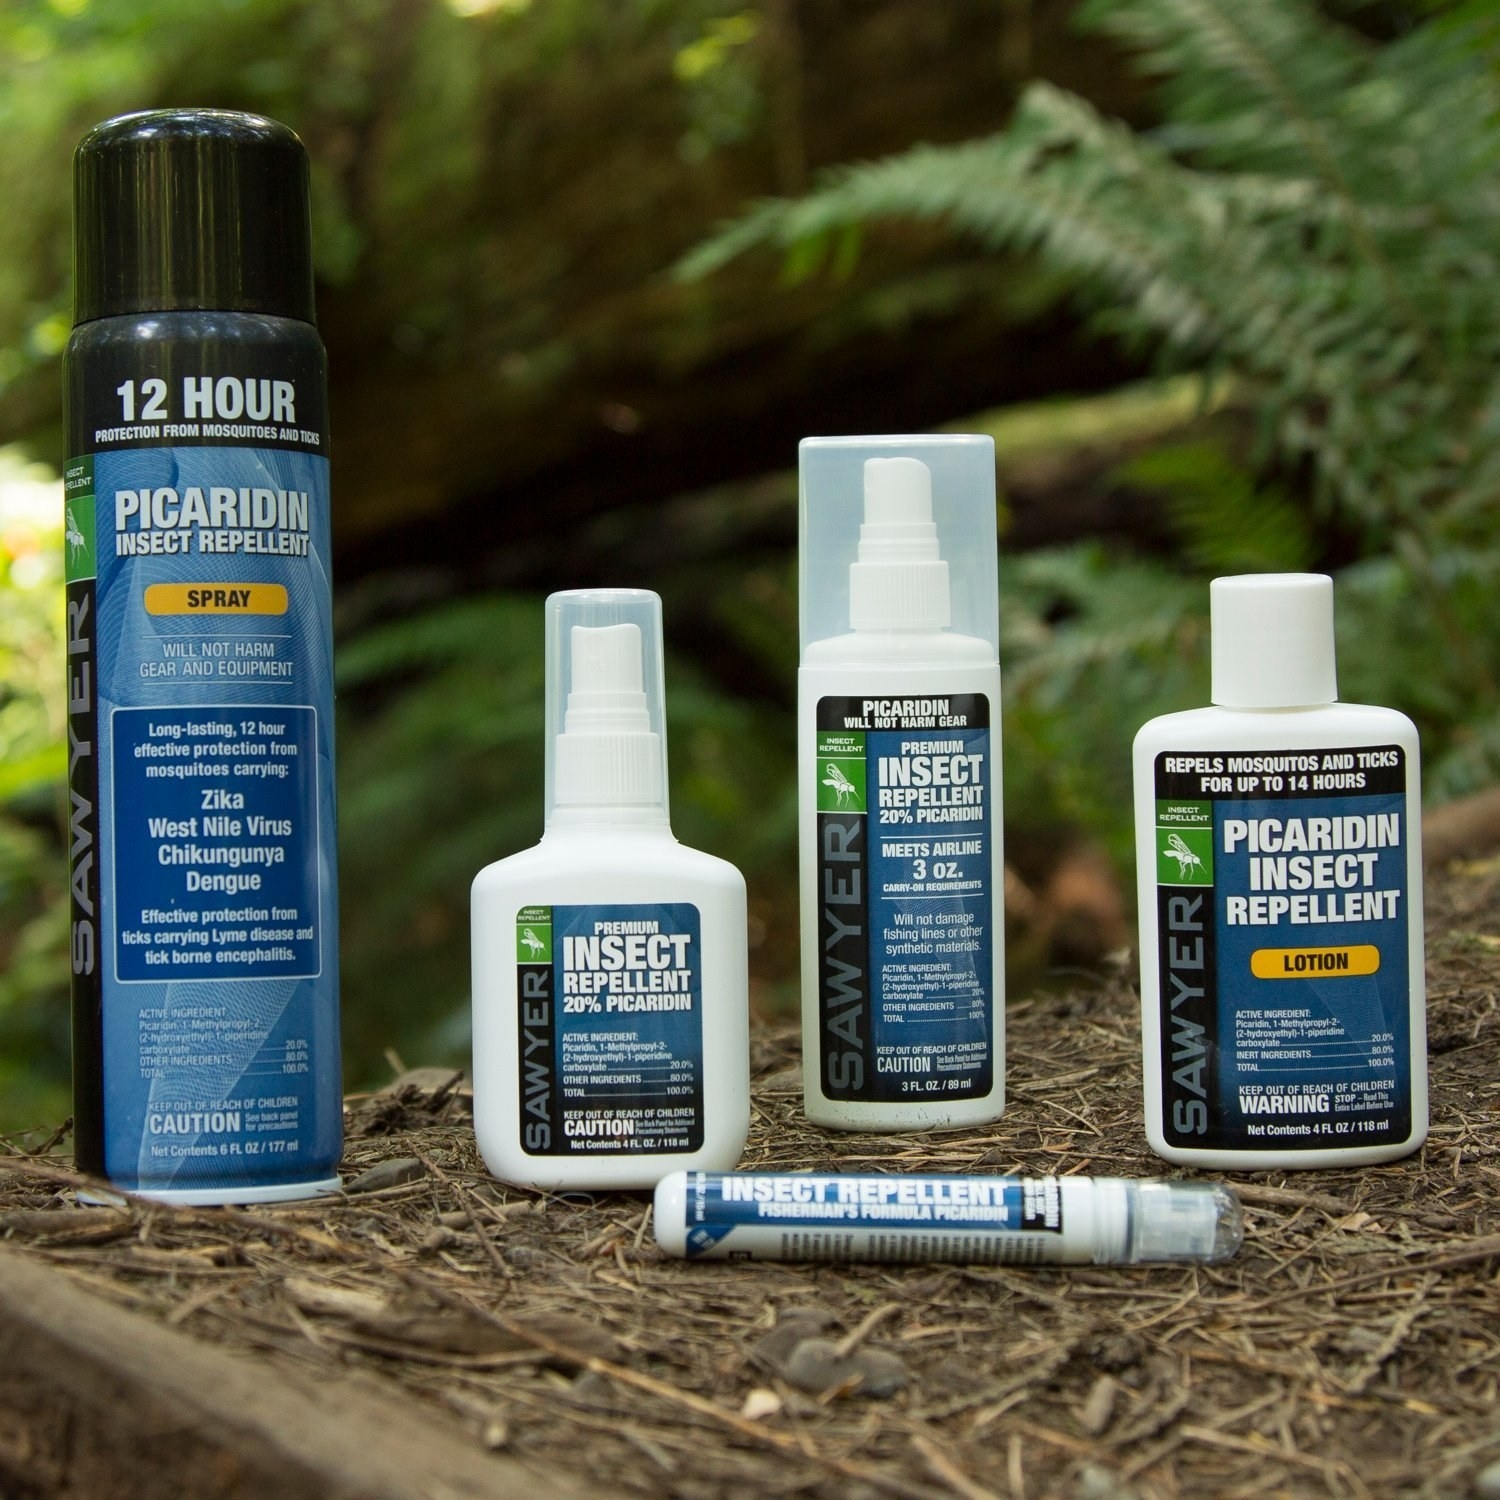 Sawyer Picaridin insect repellent in lotion and spray forms